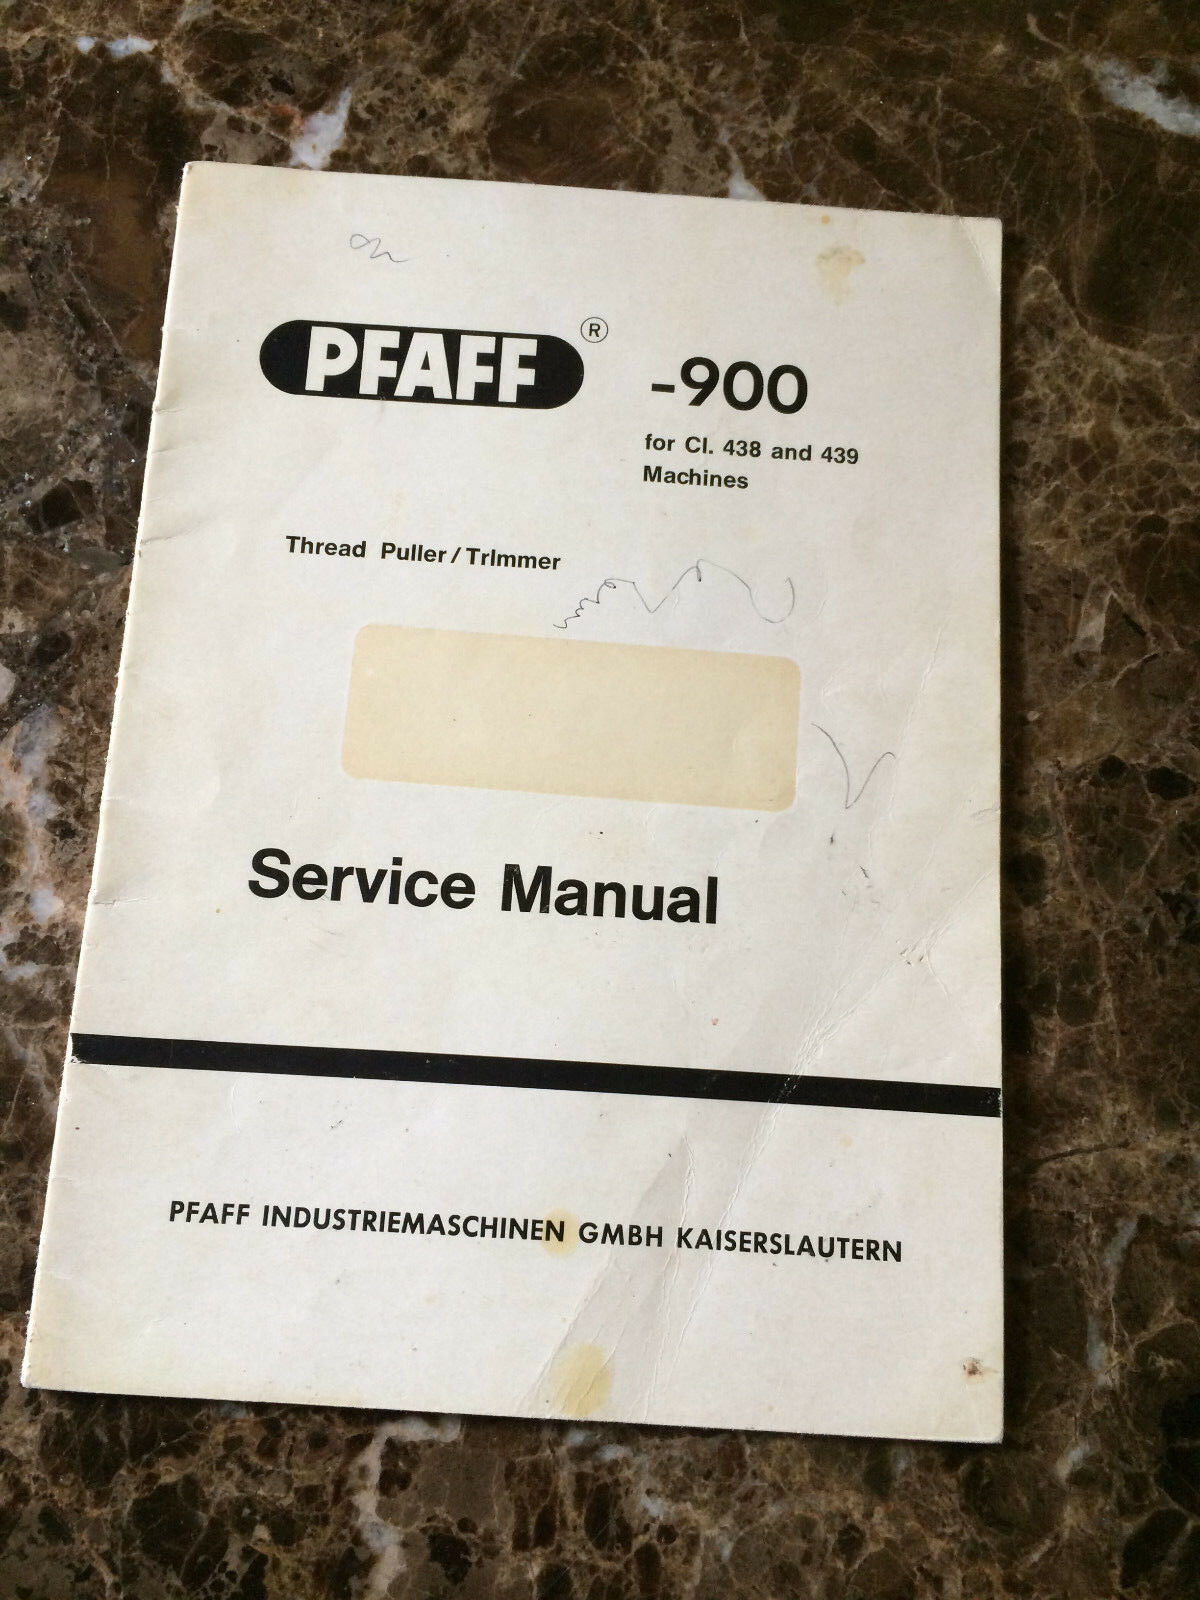 Pfaff service manual 1425 ebook ebook ballew us array service manual for pfaff thread puller trimmer on 438 u0026 439 sewing rh picclick fandeluxe Choice Image